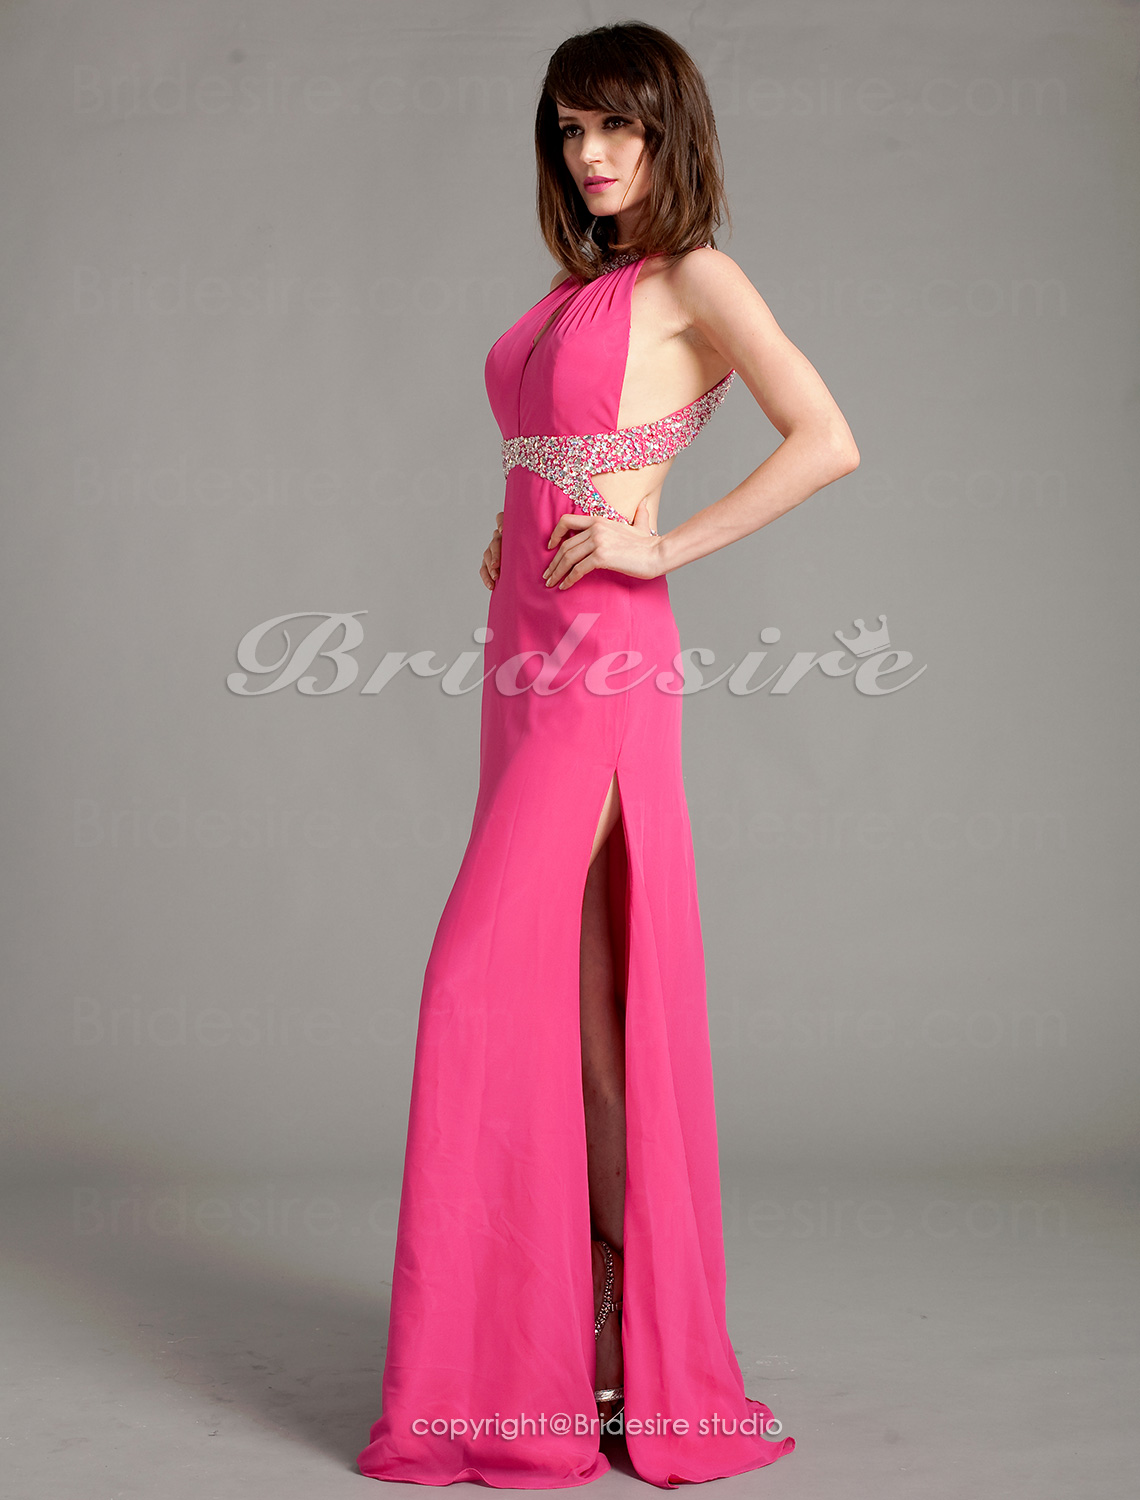 Sheath/Column Floor-length Halter Beaded Knitwear Evening Dress